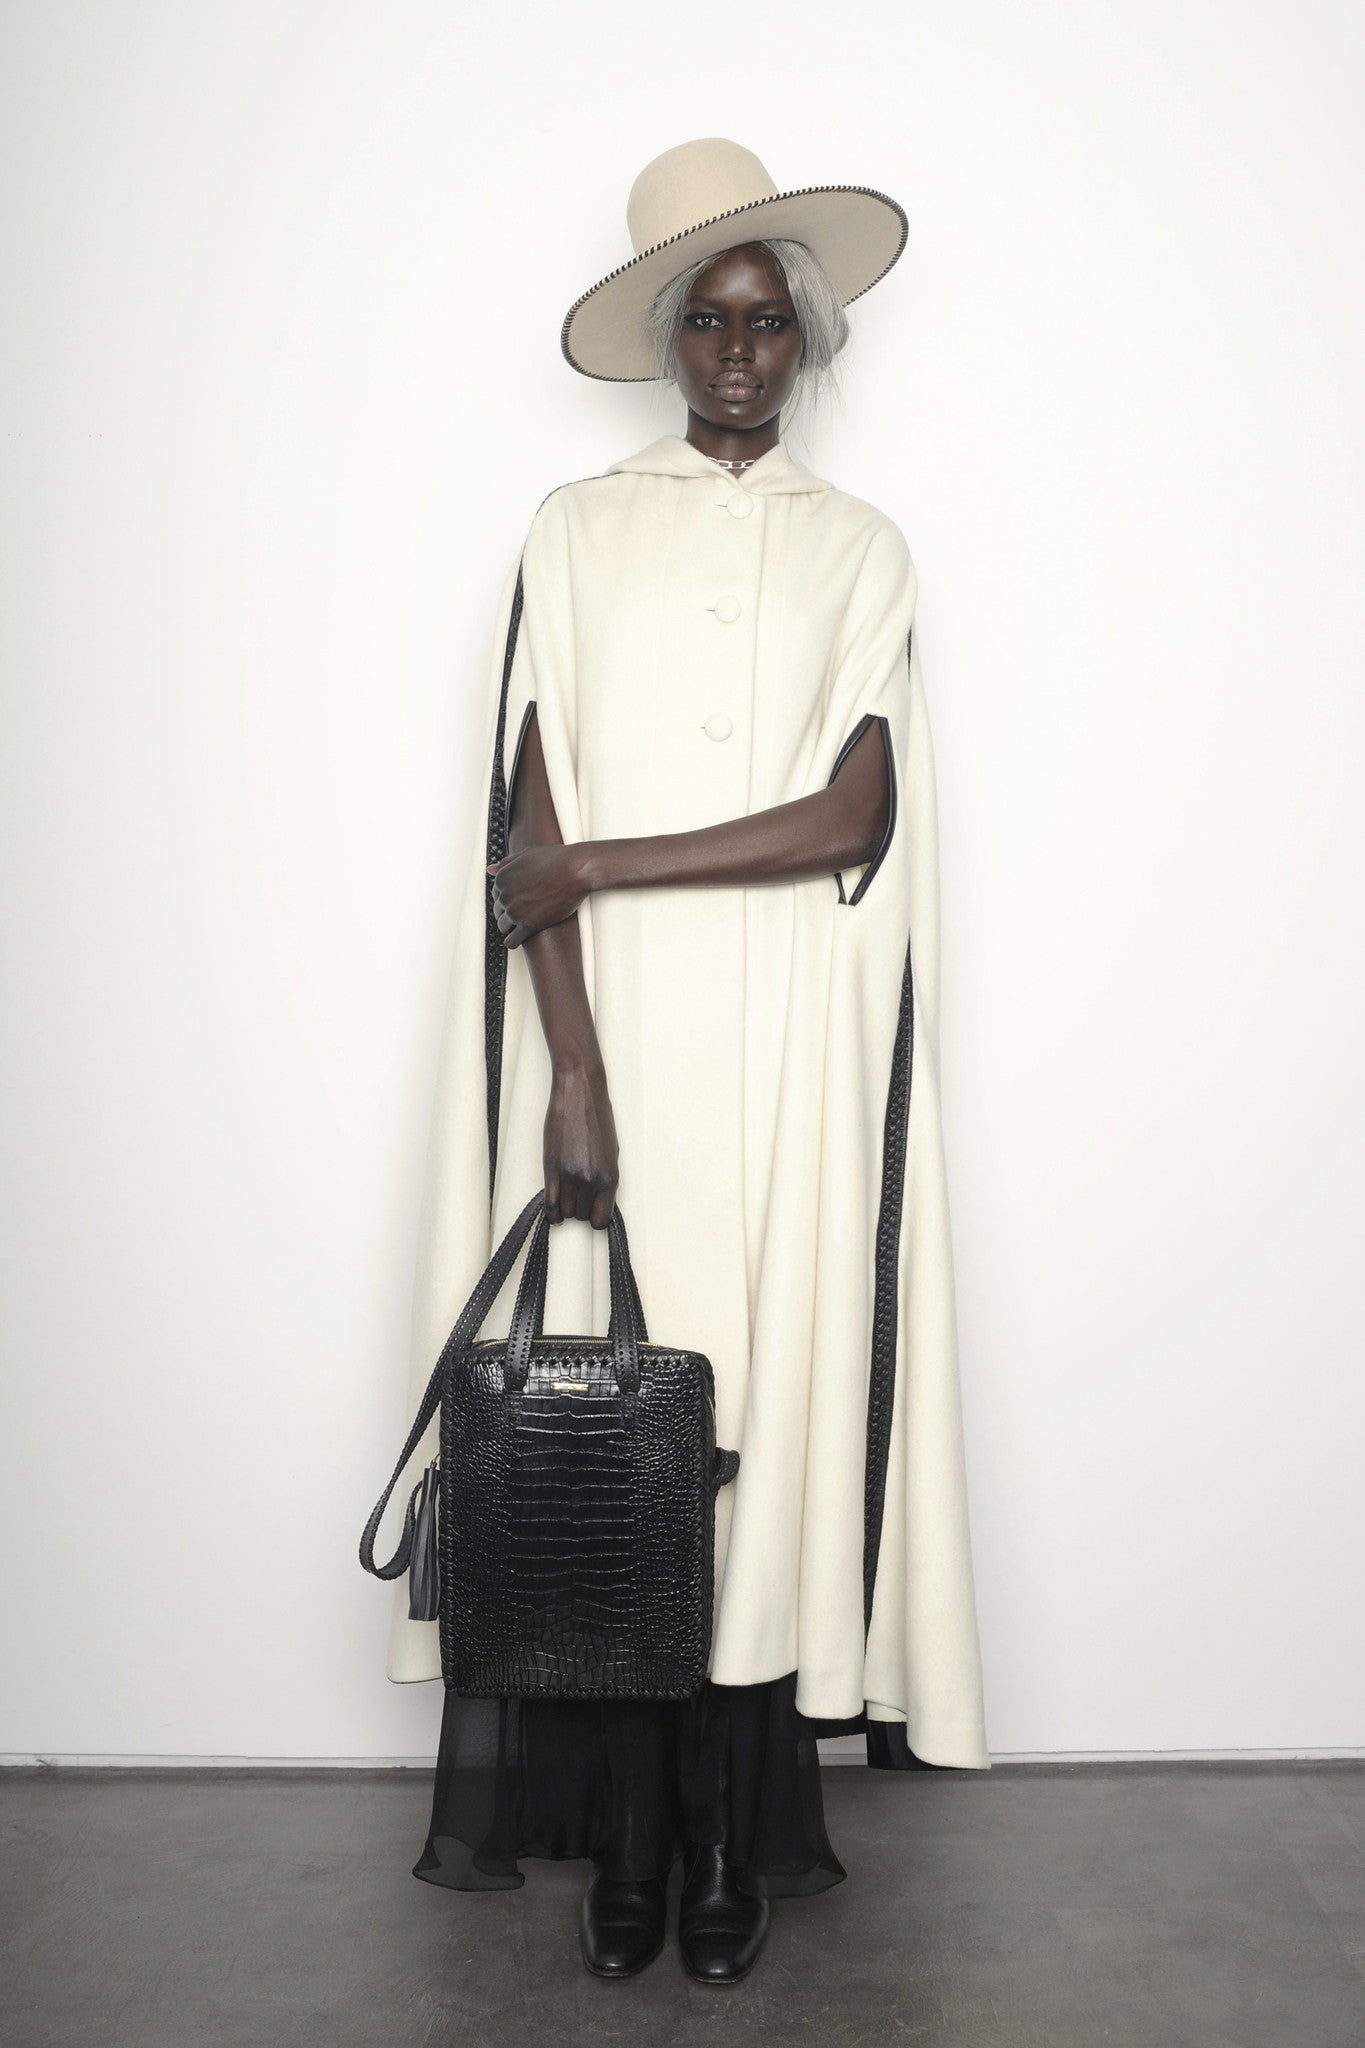 Ajak Deng IMG Model Black Embossed Croc Crocodile Alligator Cowhide Leather Vertical Folio Crossbody Work Briefcase Brief Bag Wendy Nichol Luxury Handbag Purse Designer Handmade in NYC